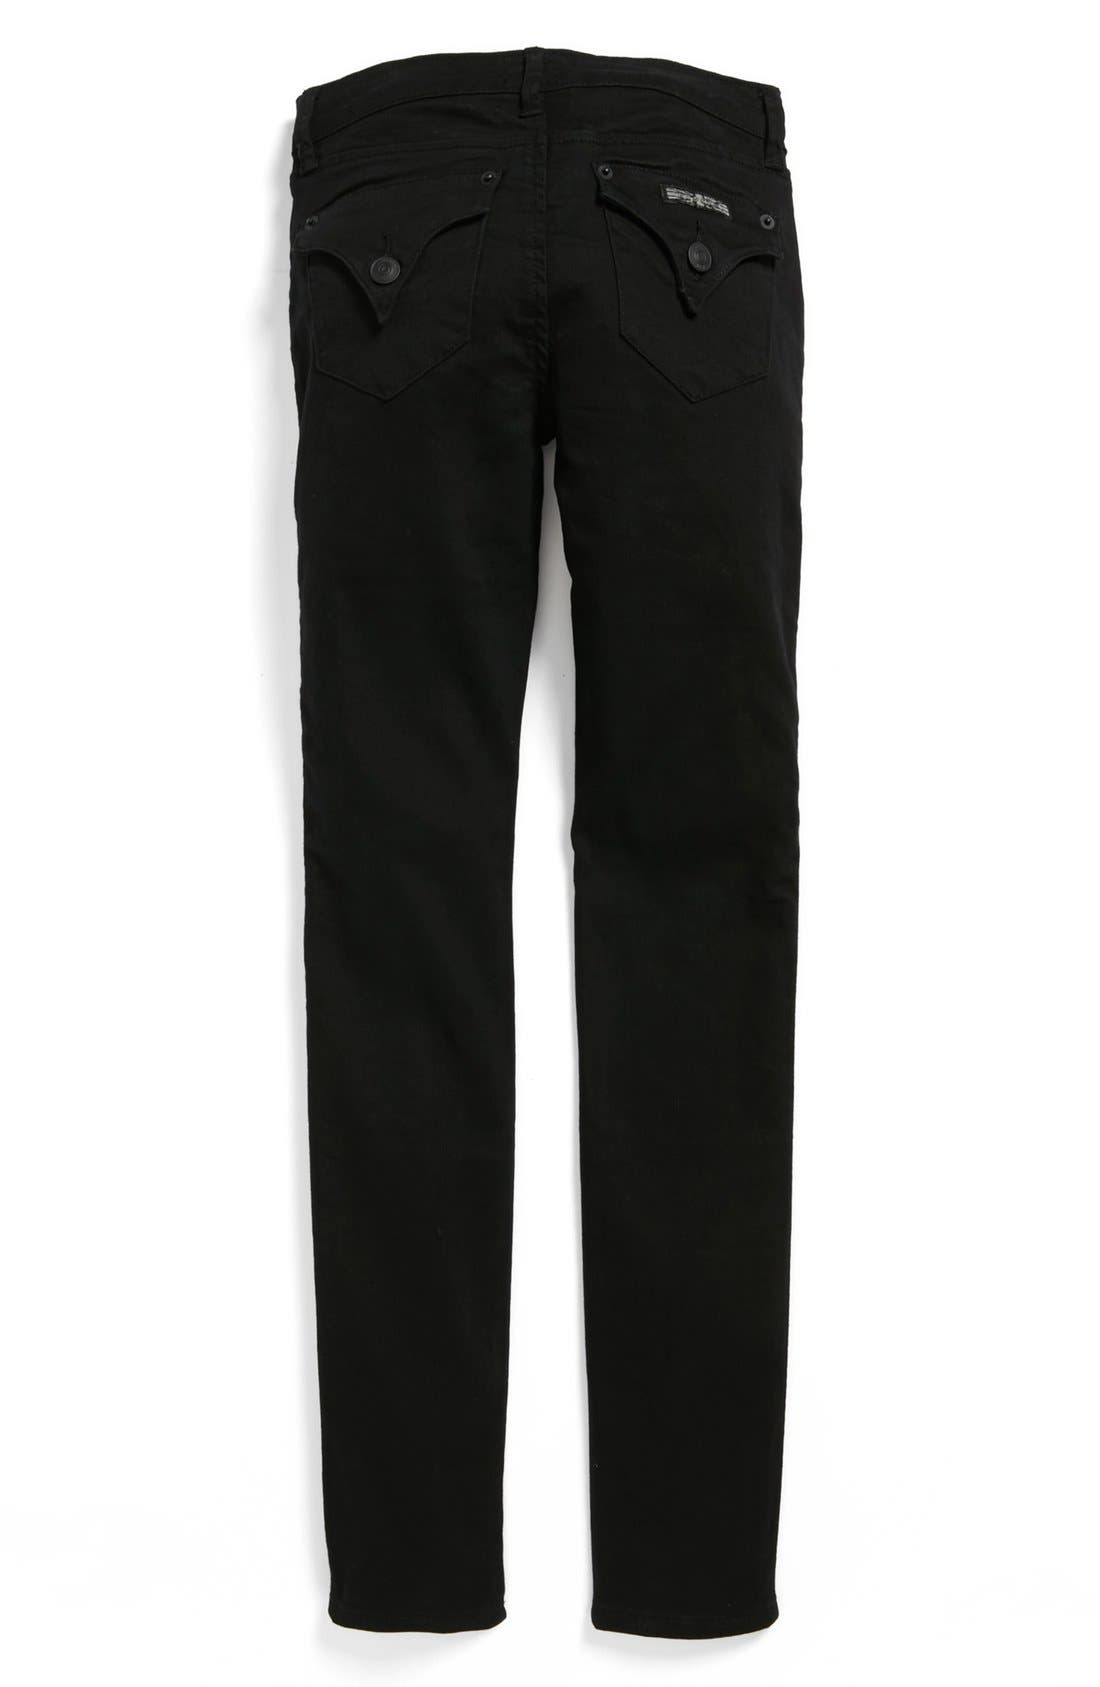 Alternate Image 2  - Hudson Kids 'Collin' Skinny Jeans (Vice Versa) (Big Girls)